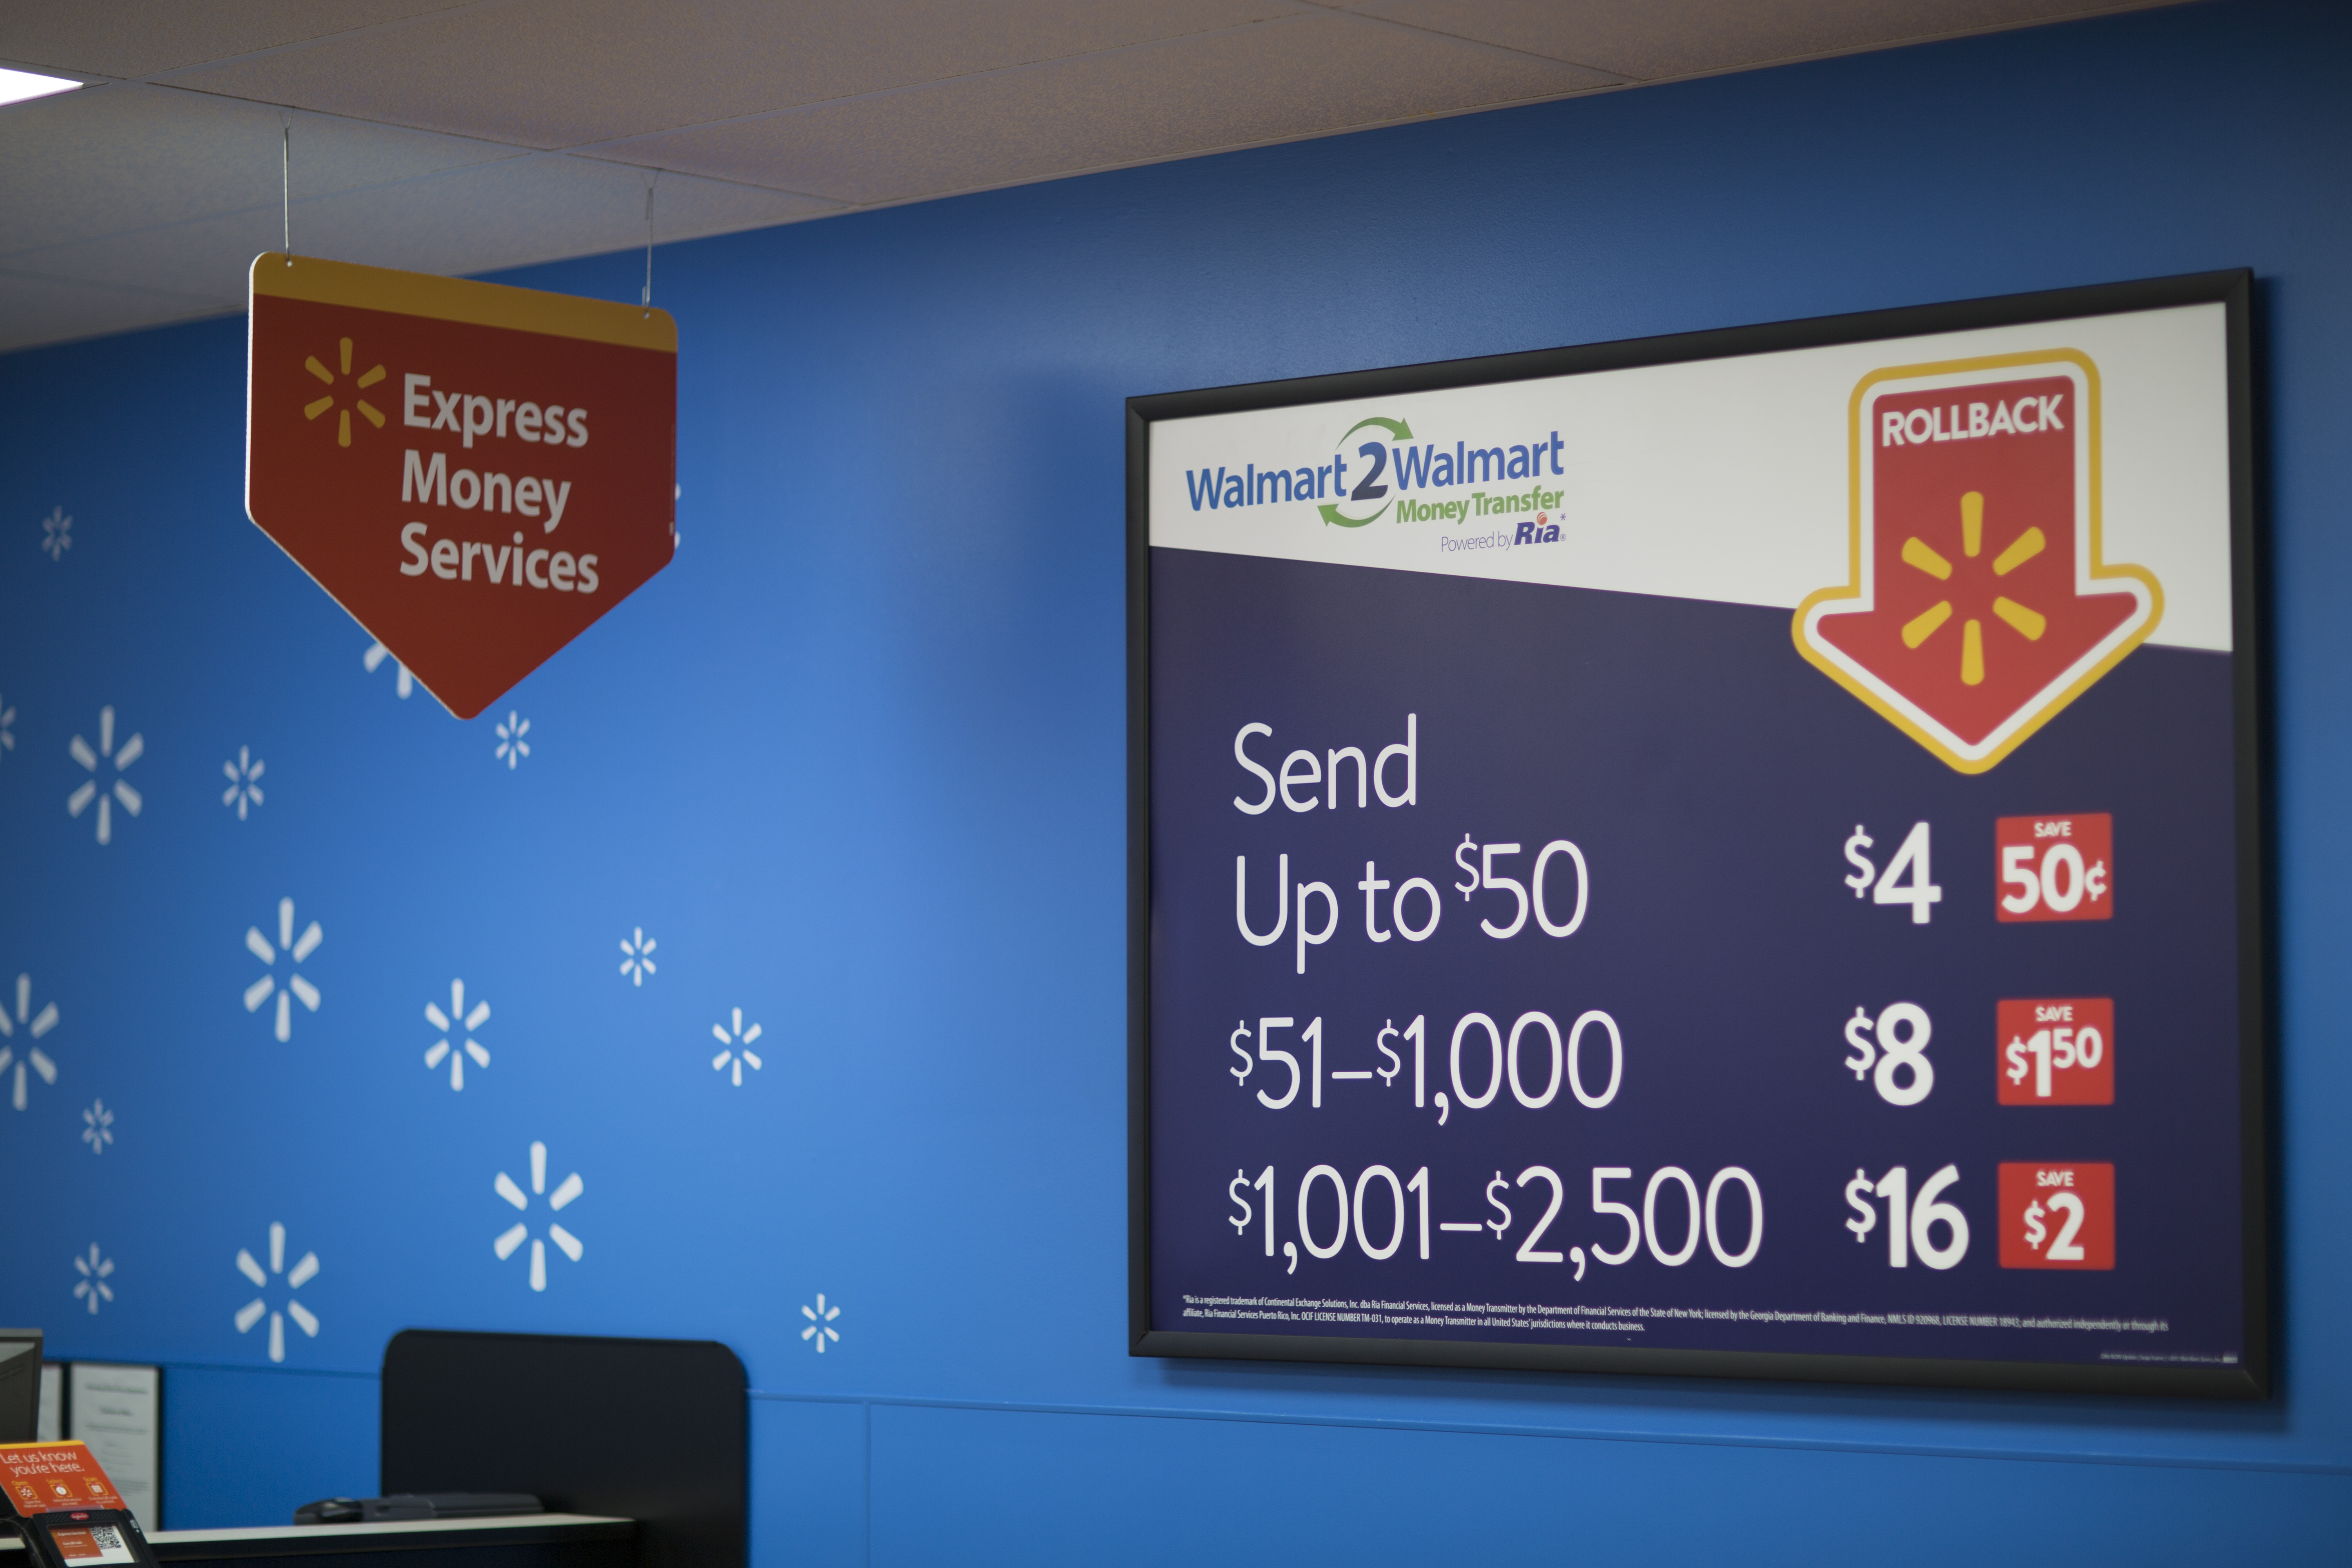 Despite already offering some of the industry's lowest prices on money transfers, Walmart is slashing prices again on its Walmart2Walmart money transfer service. (Photo: Business Wire)